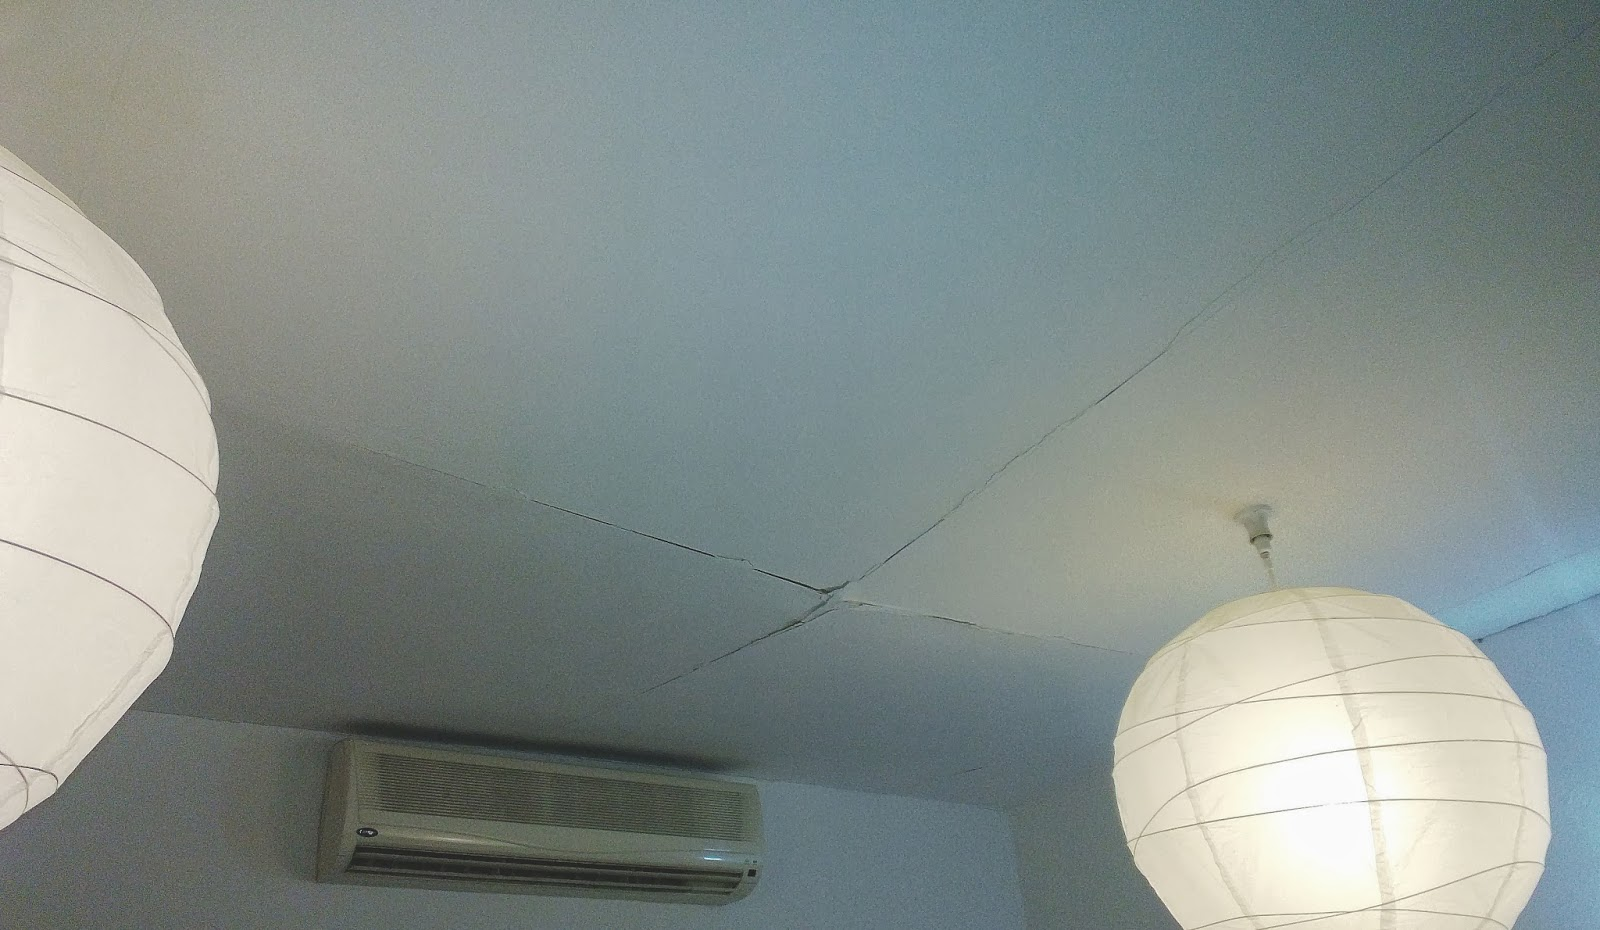 This Is Abu Dhabi Chicken Little And The Ceiling Has